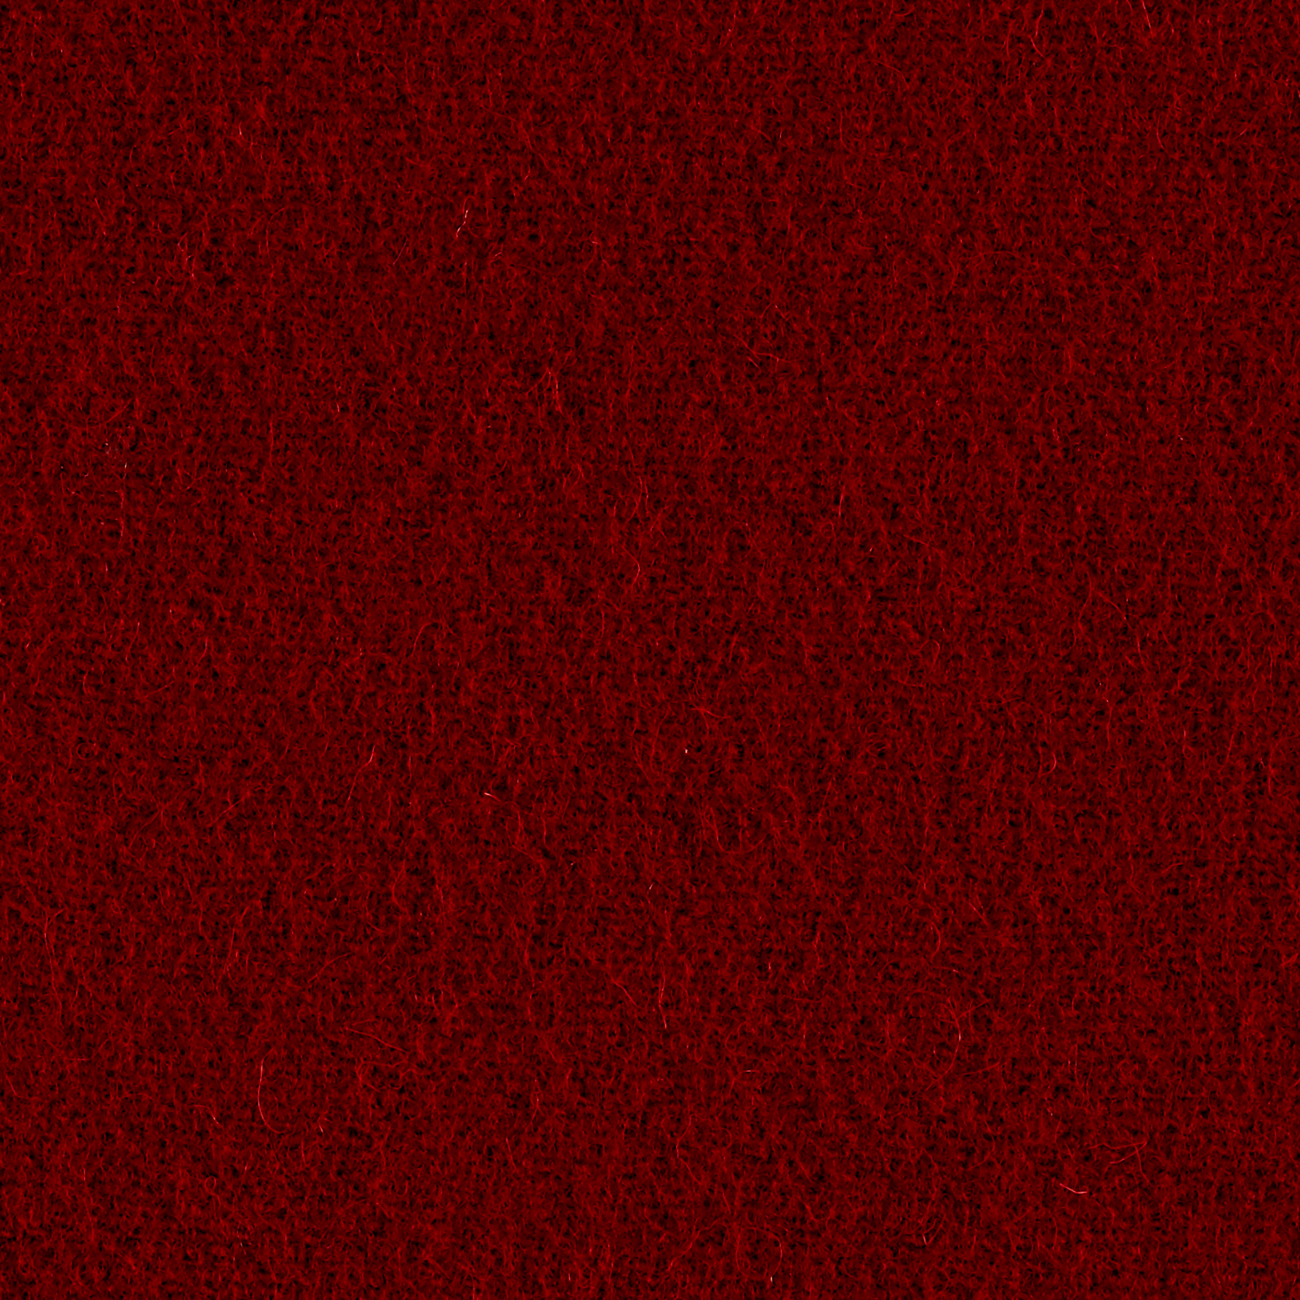 Riley Blake Wool Blend Melton Red Fabric by Christensen in USA